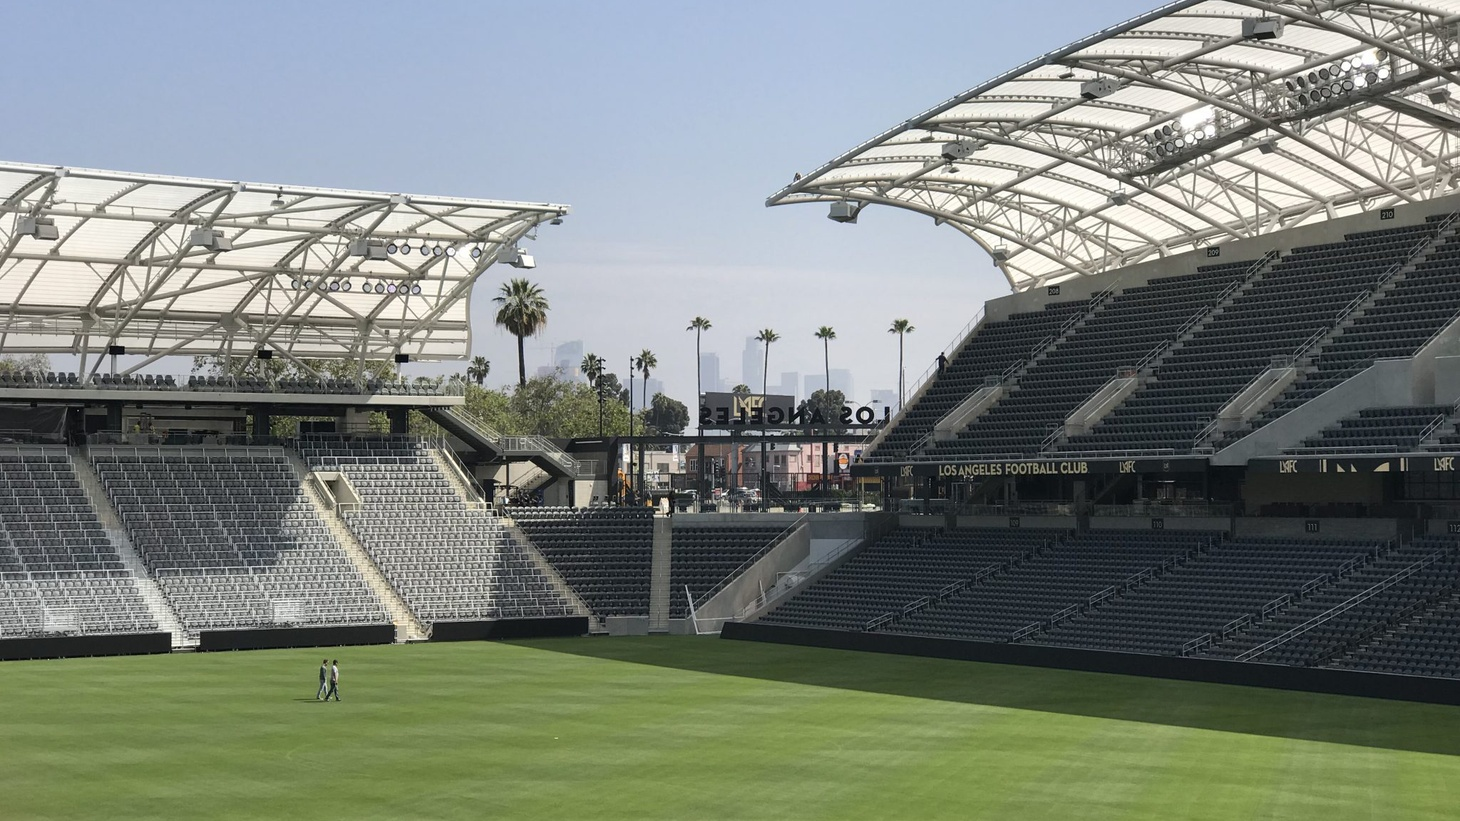 The new $350 million dollar arena of the Los Angeles Football Club sounds huge - 22,000 seats – but its owners say it will feel intimate.